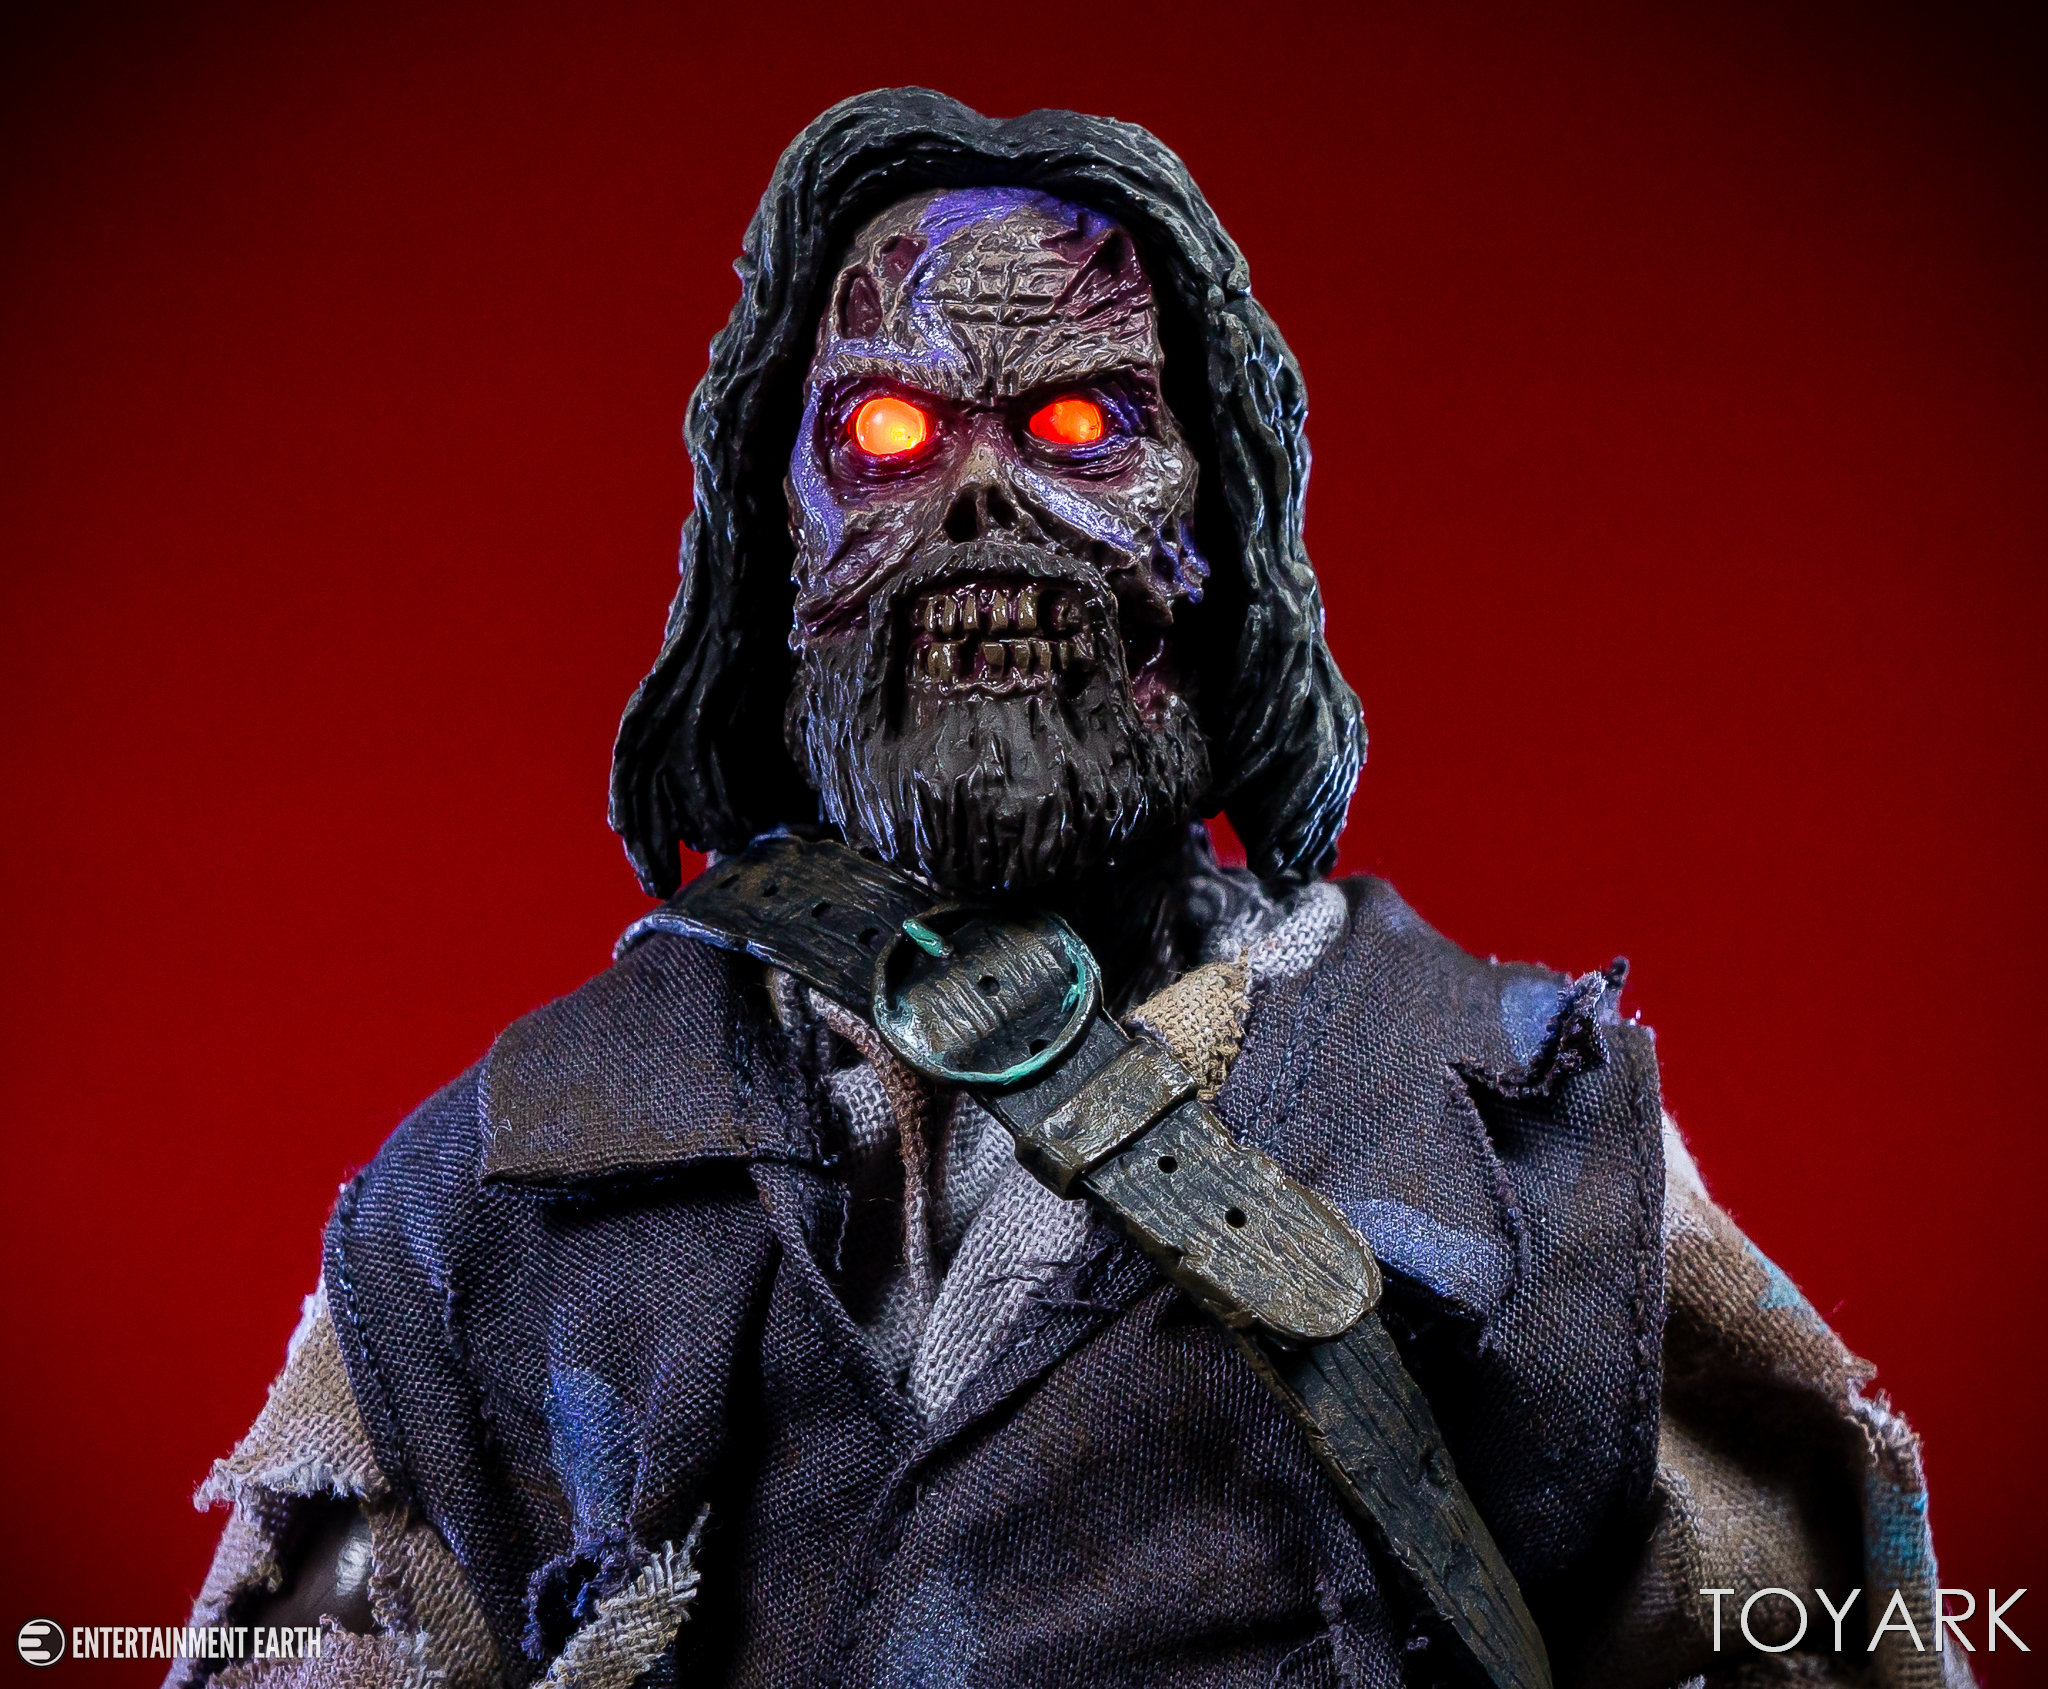 https://news.toyark.com/wp-content/uploads/sites/4/2018/11/NECA-Captain-Blake-The-Fog-008.jpg